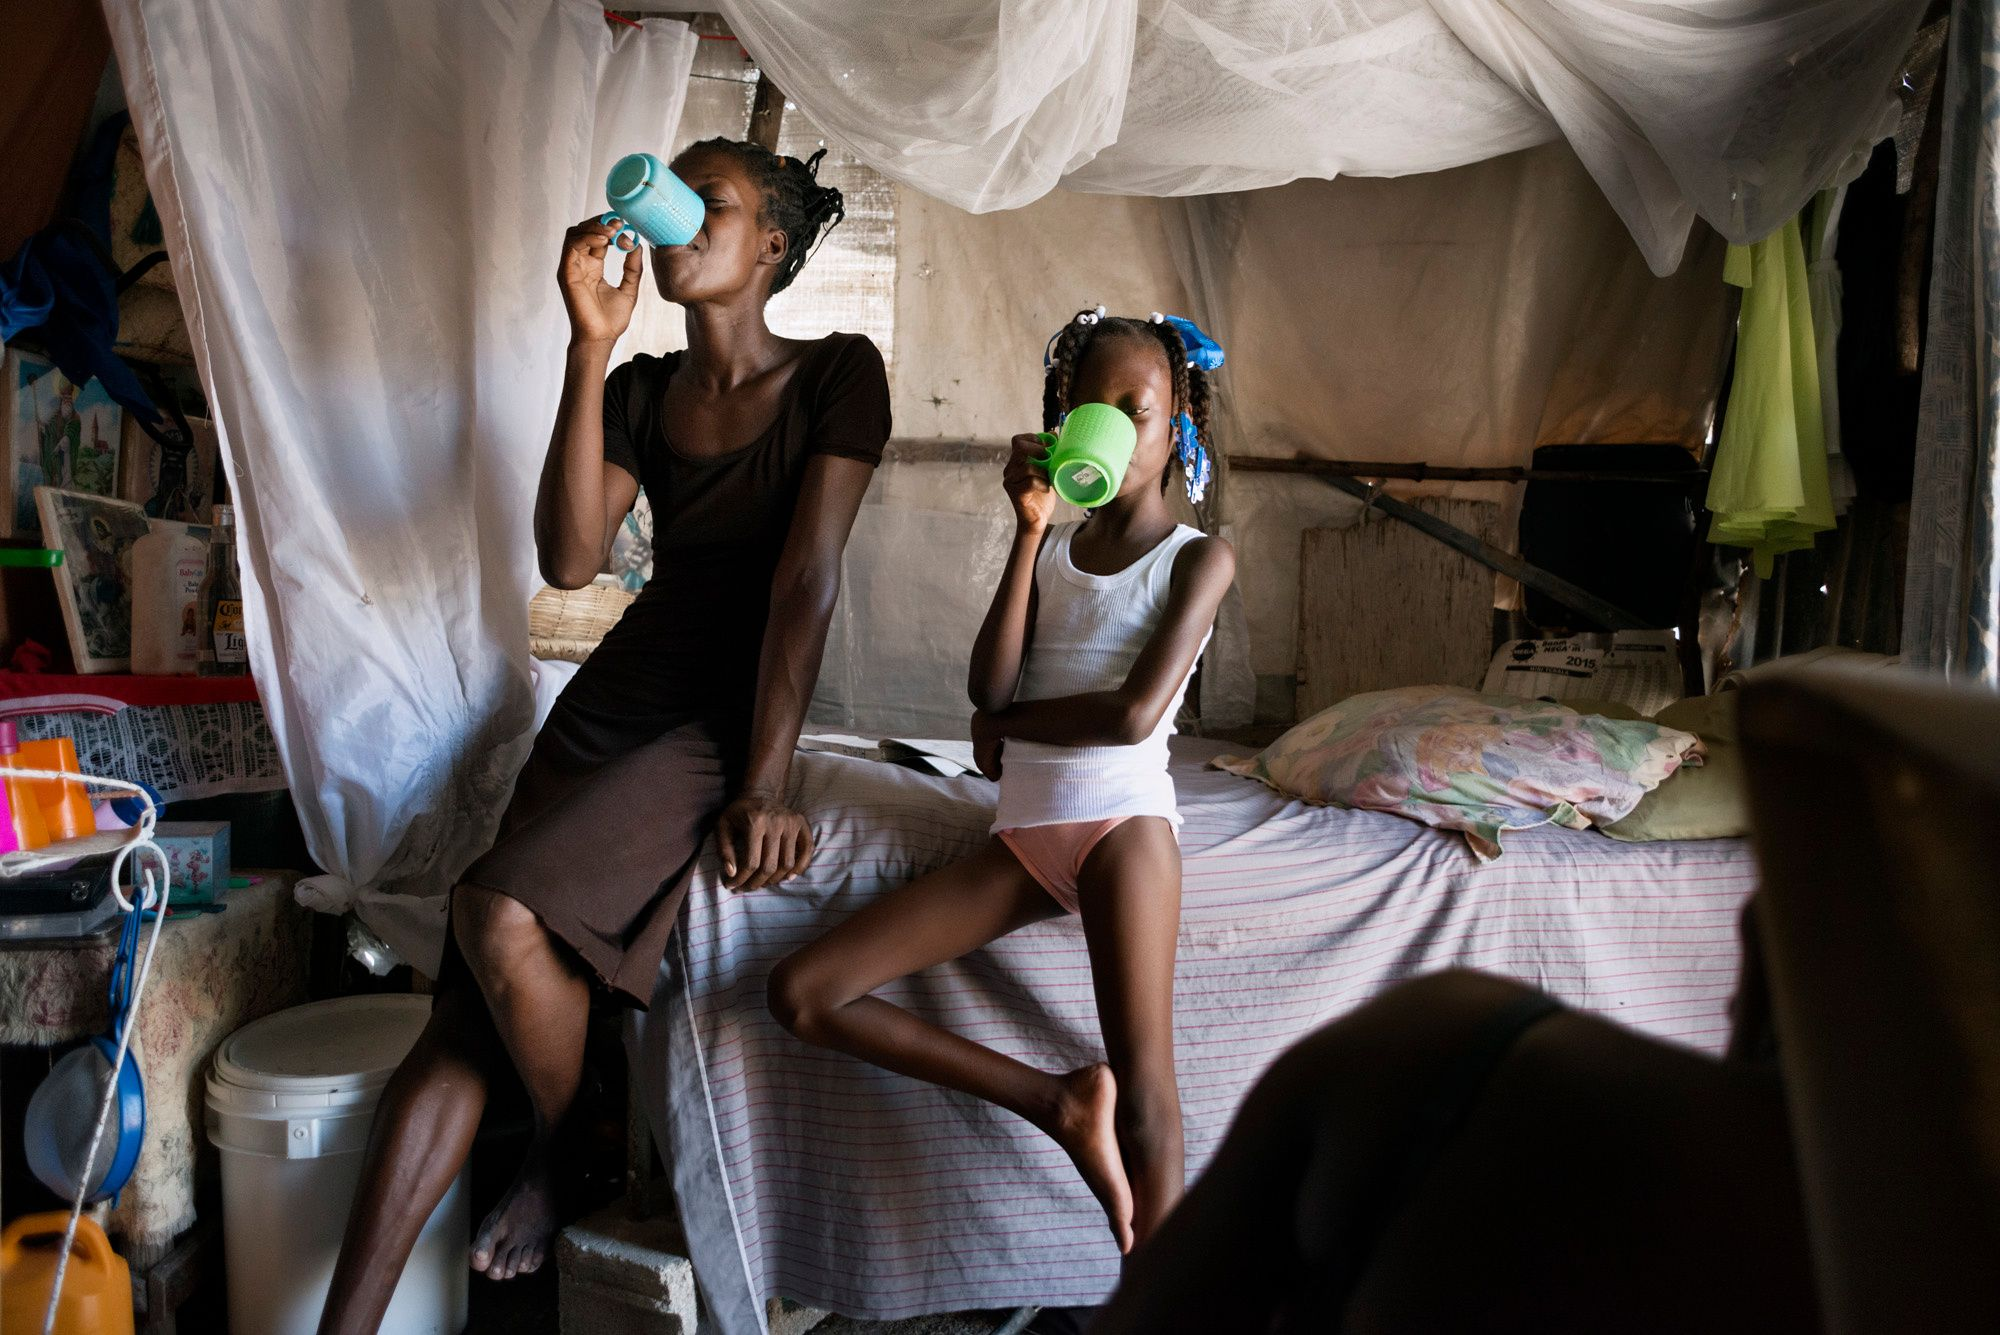 Nadie, 28, together with her daughter, 10. They are both drinking non-potable water in the shelter where they live. Nadie emigrated with her husband and daughter from St. Michel de Latalaille in the province of Cap Haitien to Port au Prince in 2010. They used to cultivate rice and vegetables and then sell them in the market but the production has dropped in recent years to the point that the farm could not support them. They sold their house and their land for a tiny amount of money and…